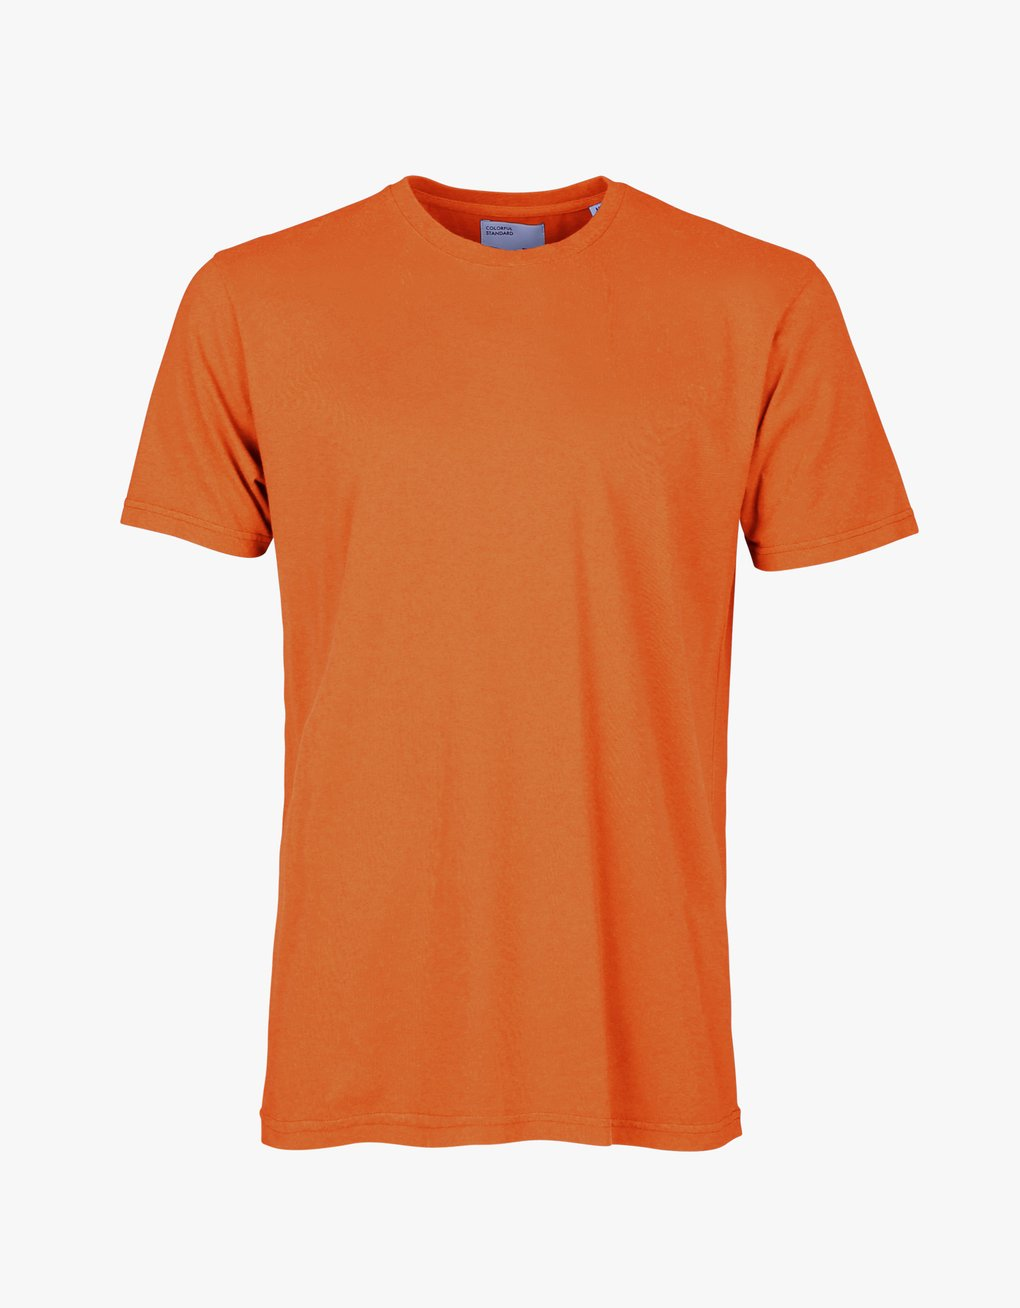 COLORFUL STANDARD | Classic Organic T-shirt | Burned Orange - LONDØNWORKS